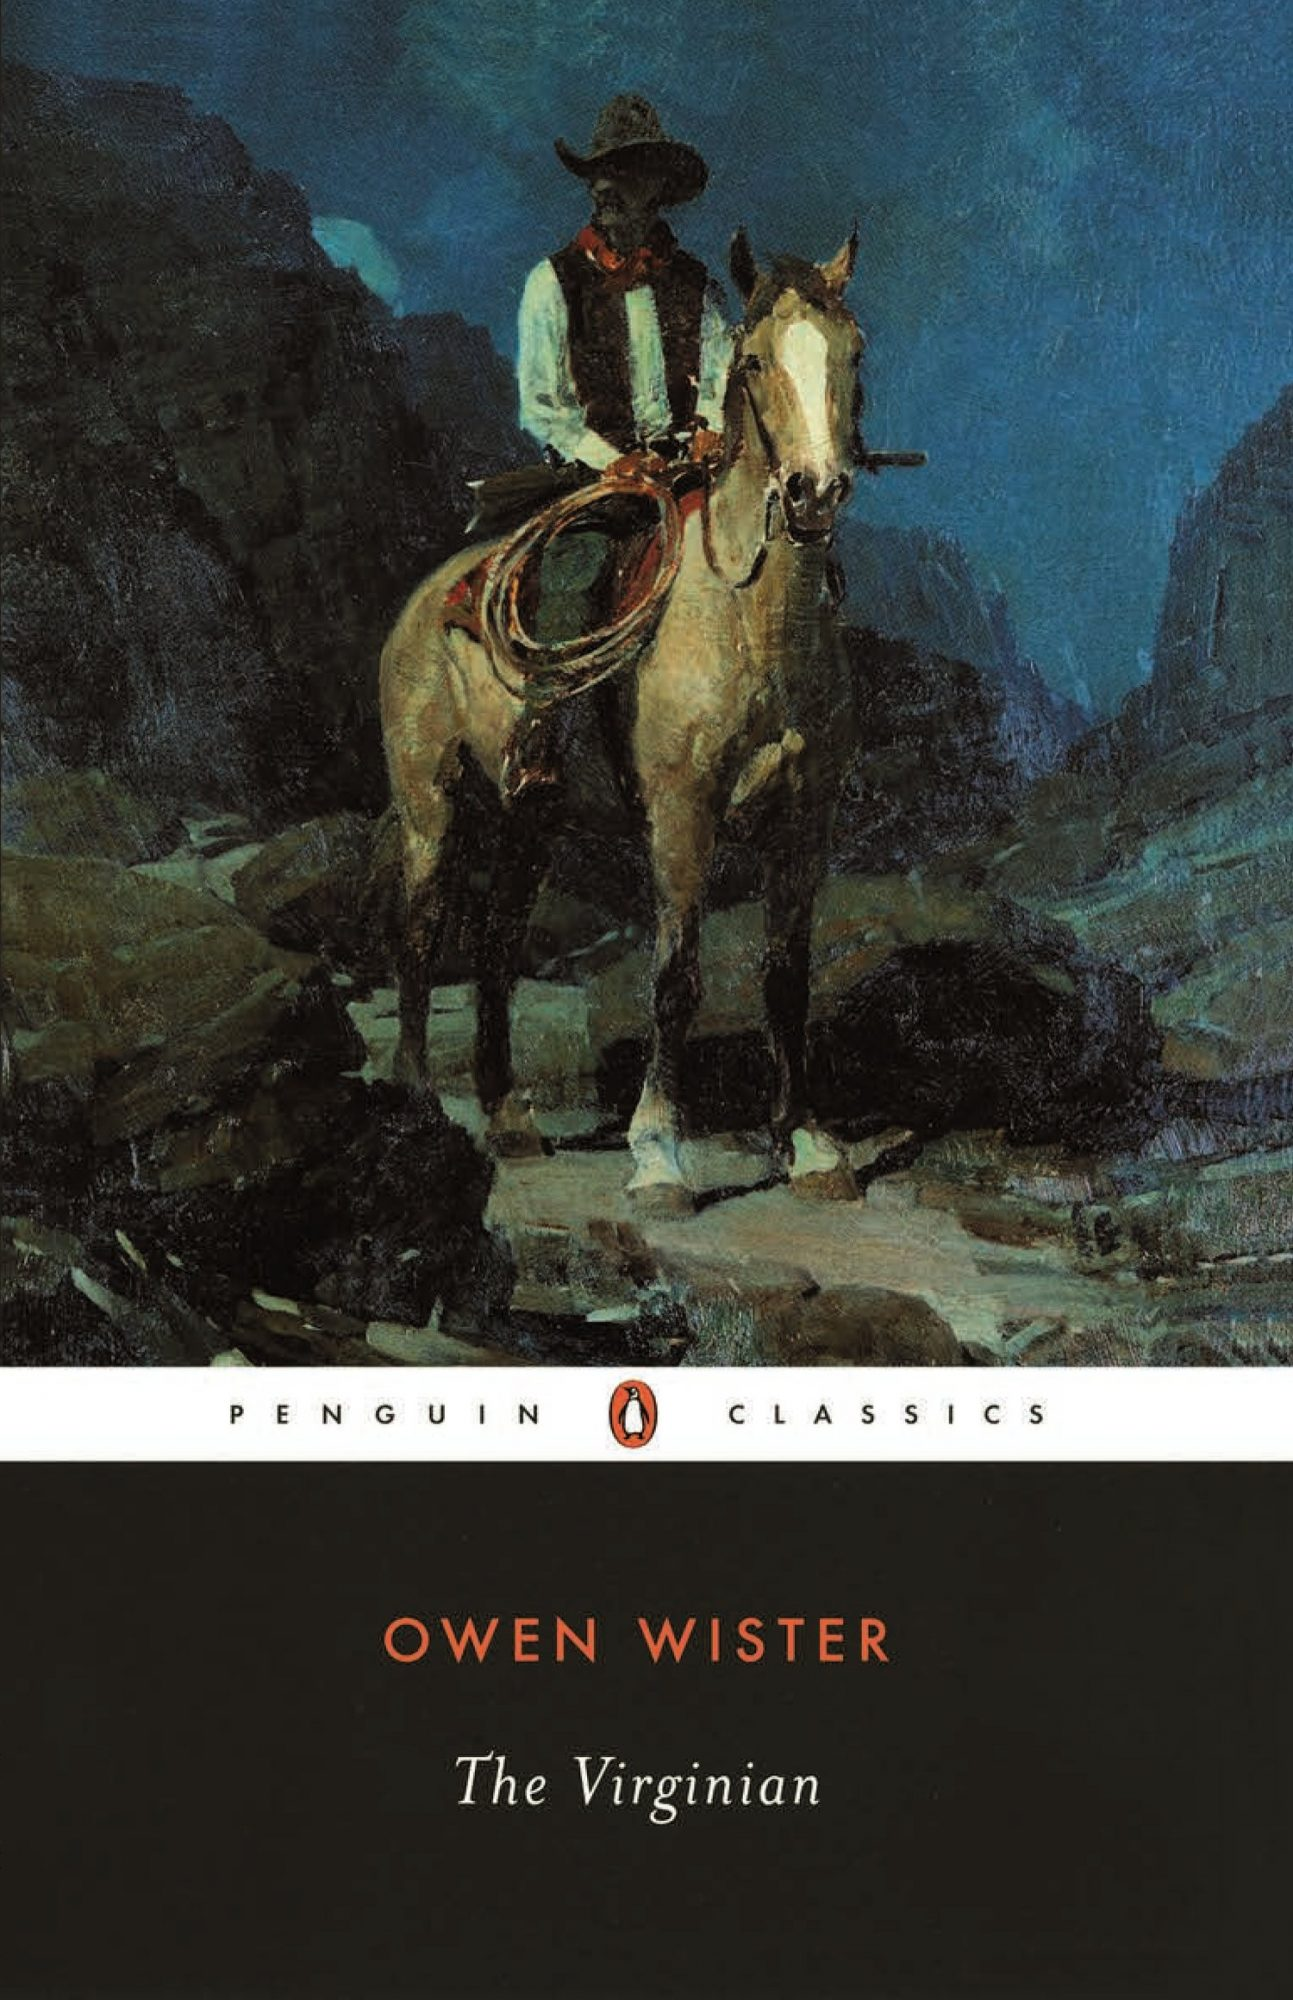 Wyoming: The Virginian by Owen Wister